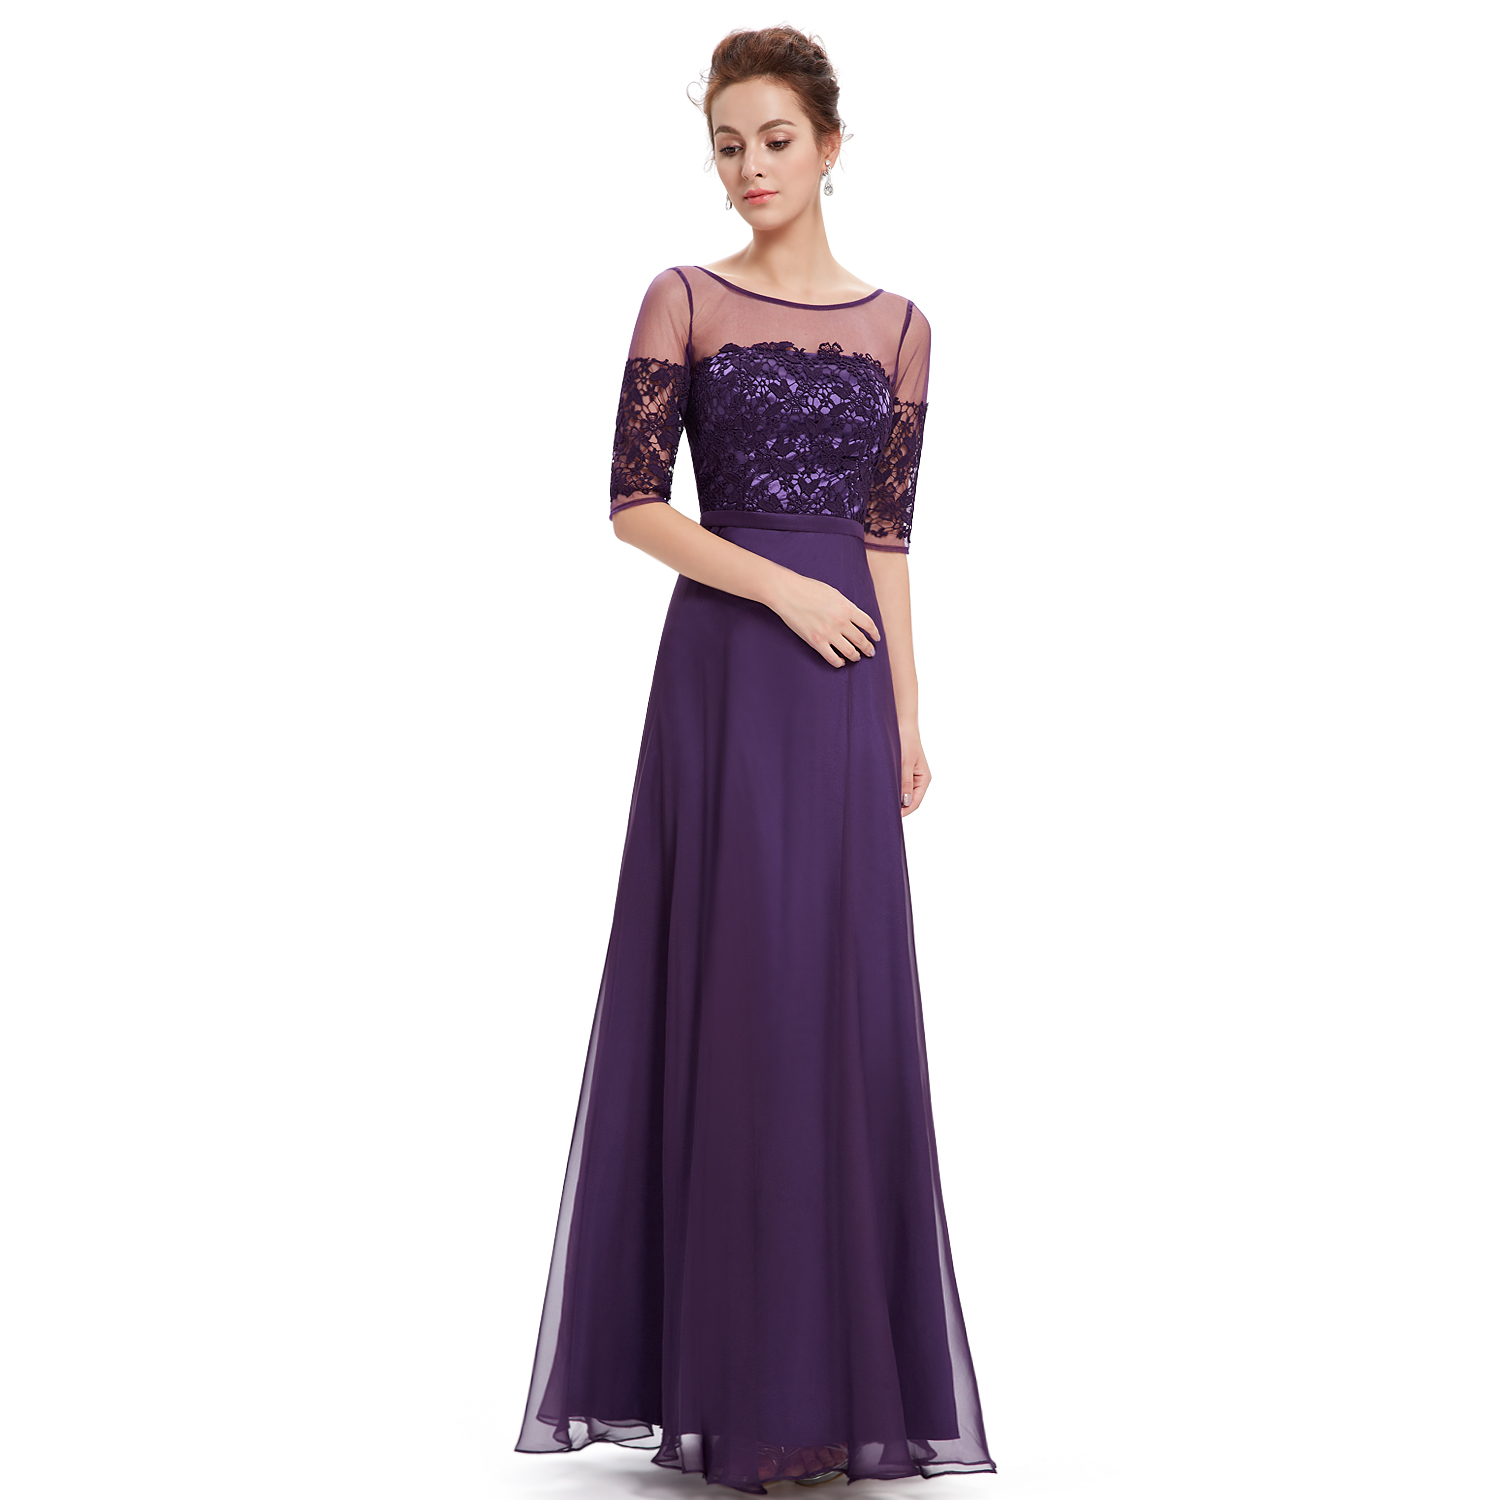 Womens short sleeve bridesmaid dresses formal evening gown for Short formal wedding dresses